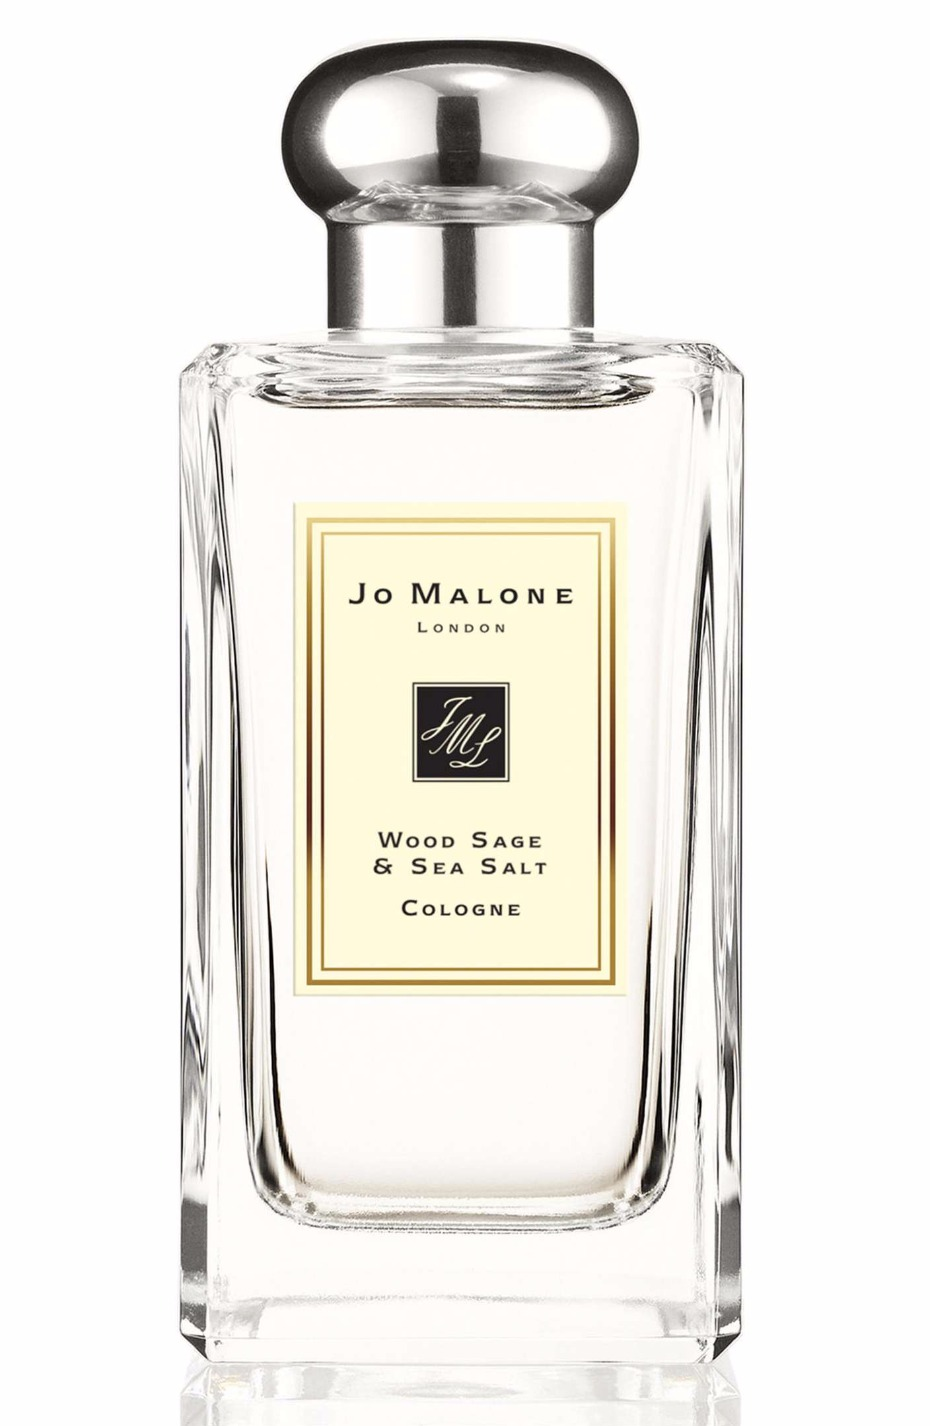 Wood Sage & Sea Salt Cologne by Jo Malone,